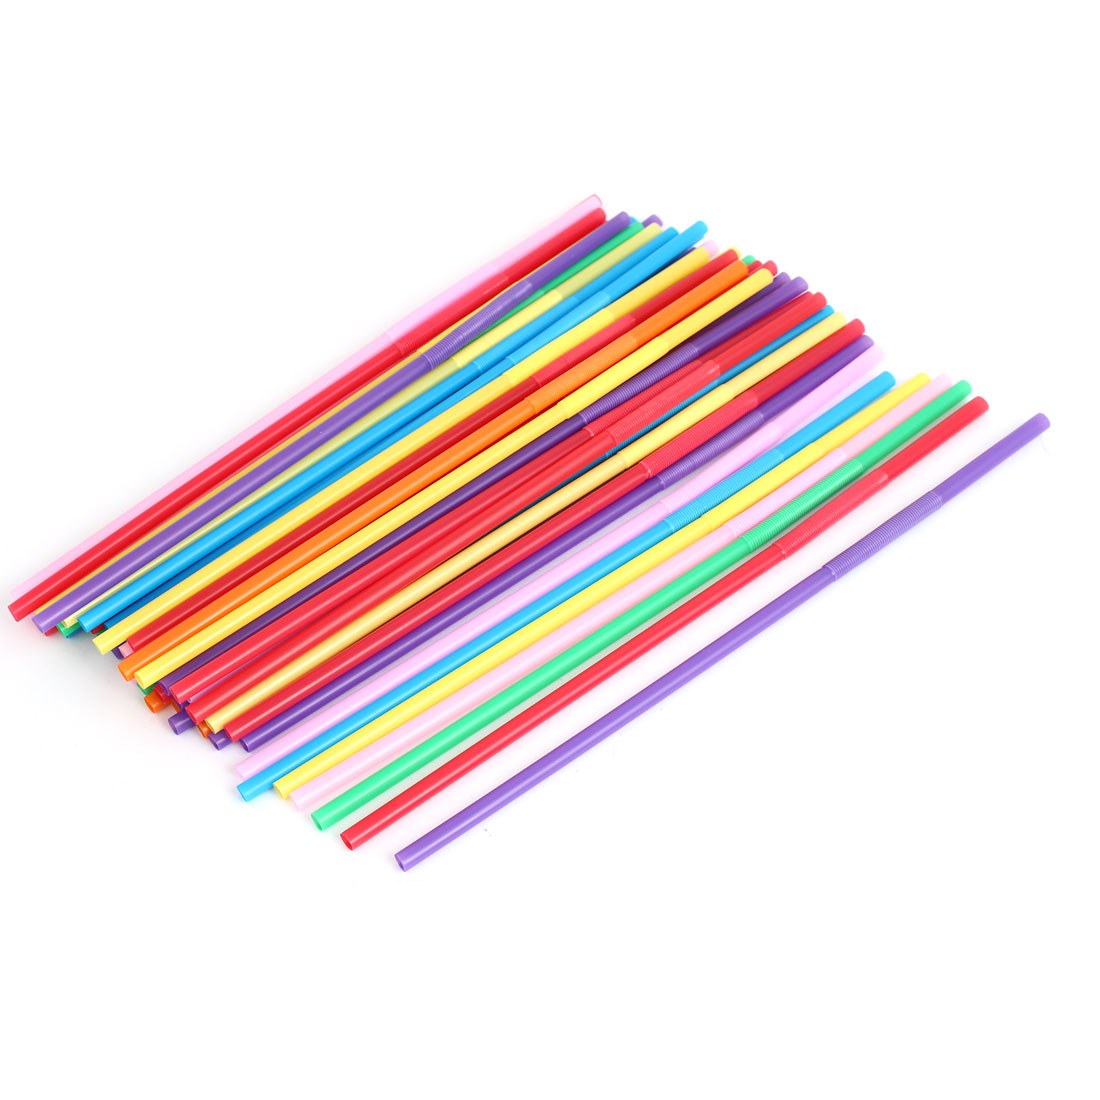 Plastic Wedding Party Birthday Flexible Drinking Straw Assorted Color 50Pcs